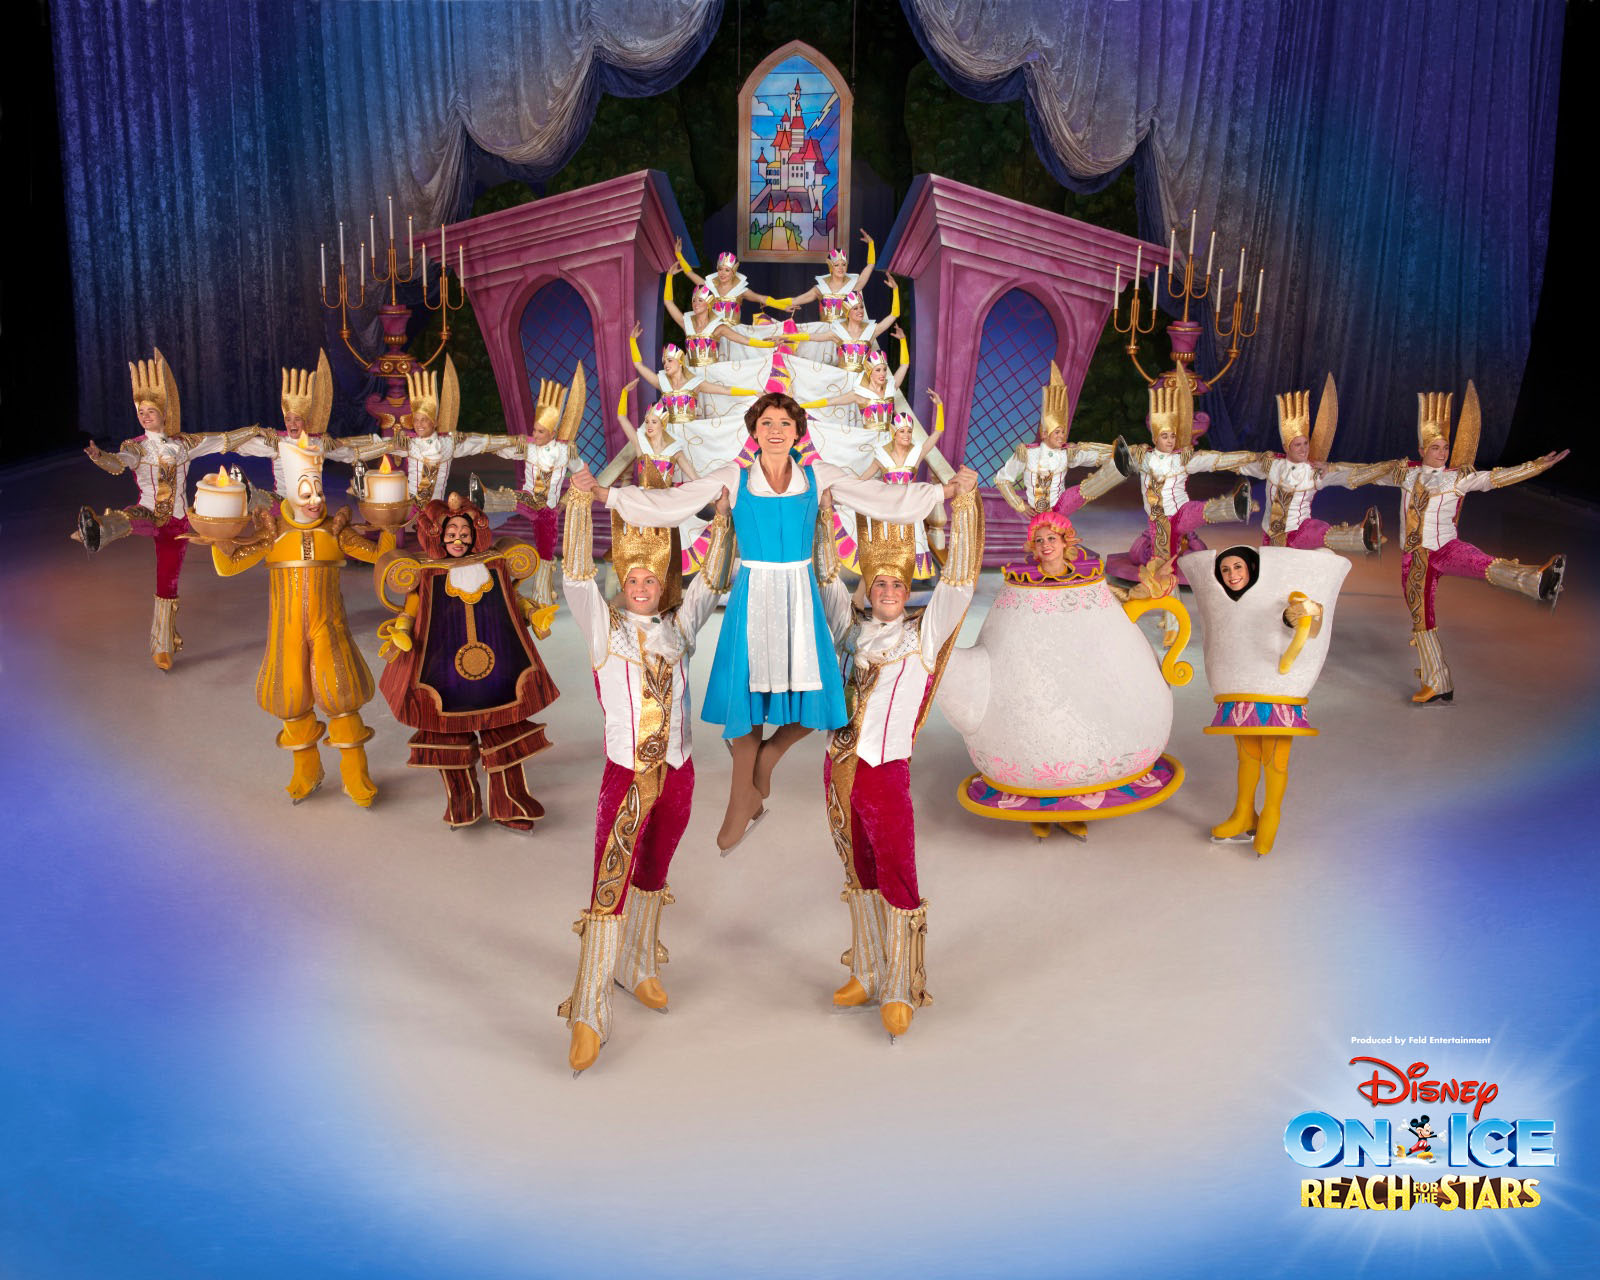 Disney On Ice - Reach For The Stars 4